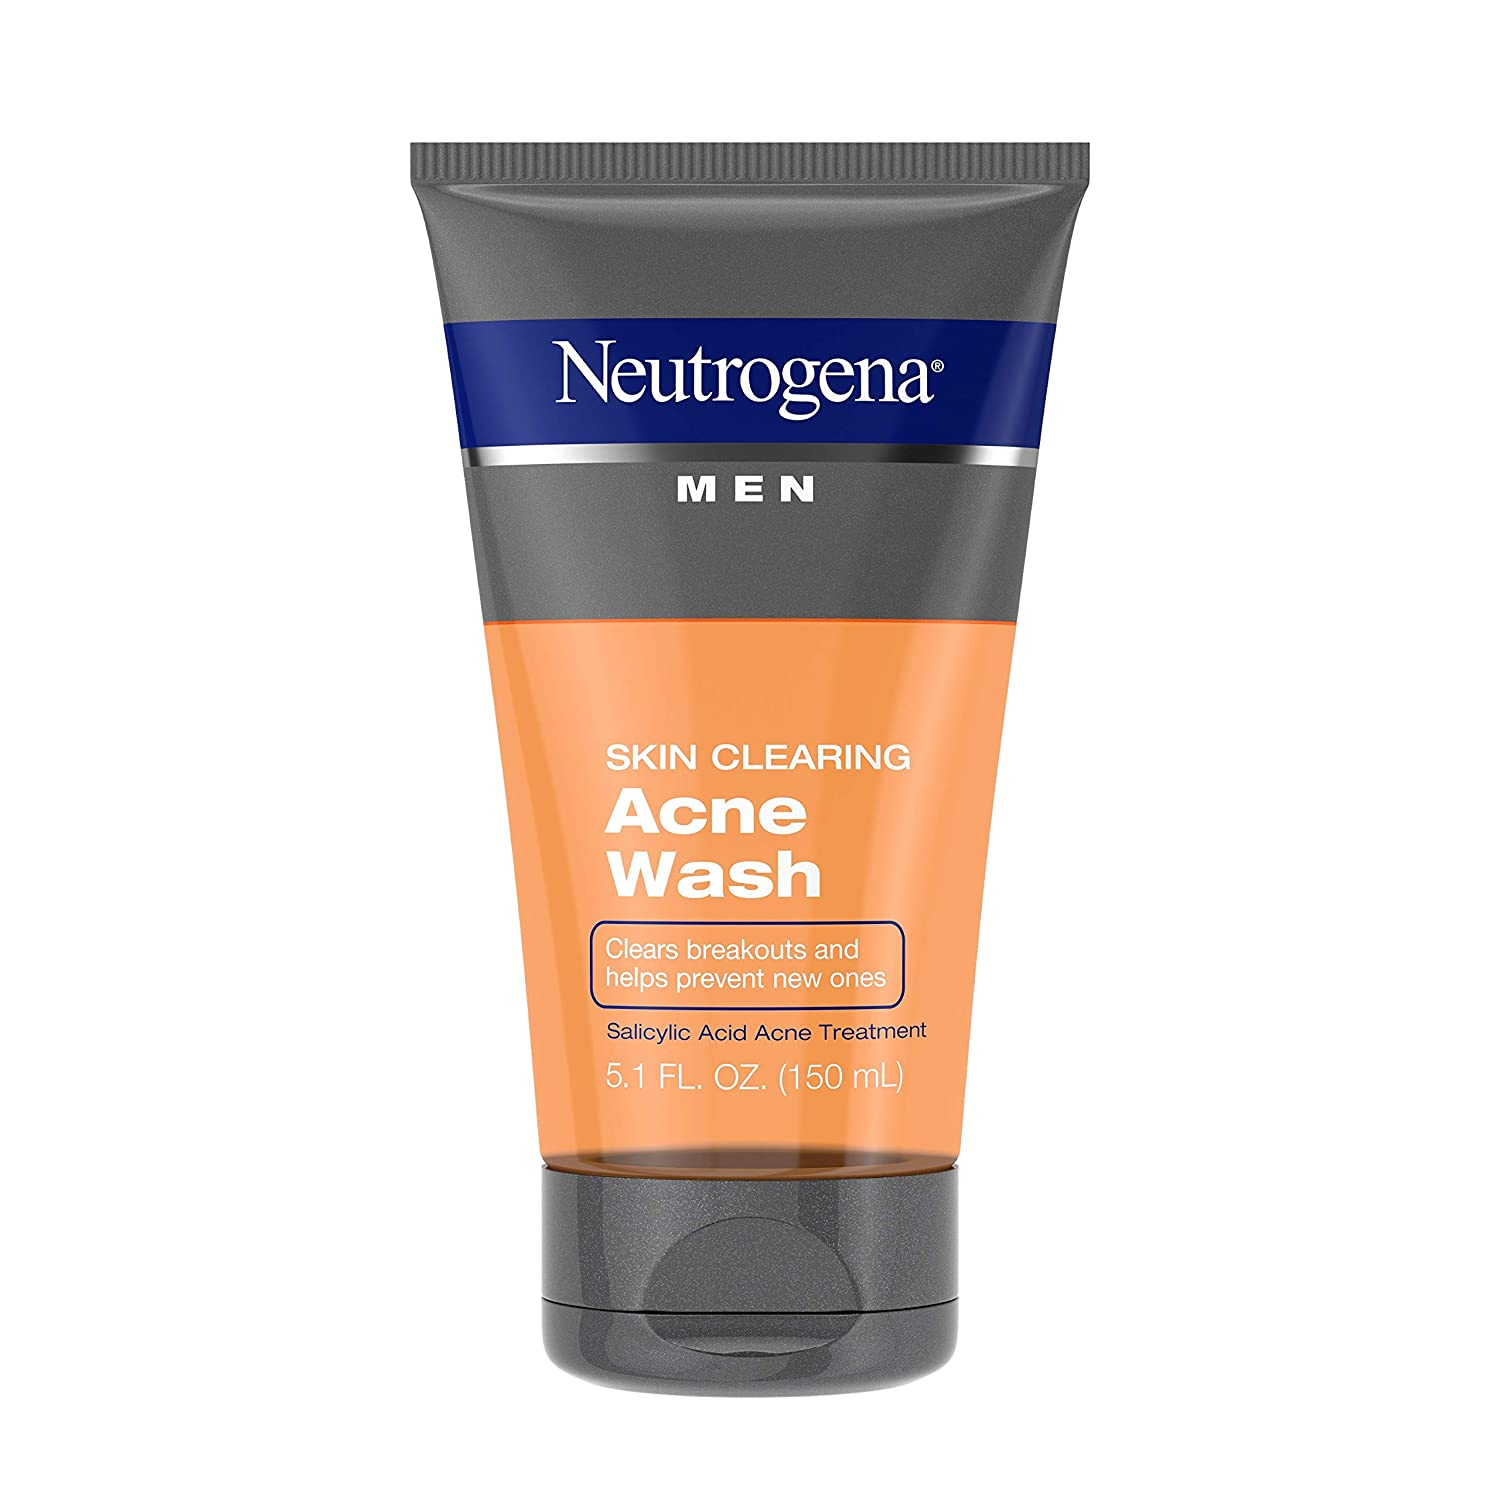 Neutrogena men skin clearing daily acne face wash with salicylic acid acne treatment non comedogenic facial cleanser, best skin care products for men